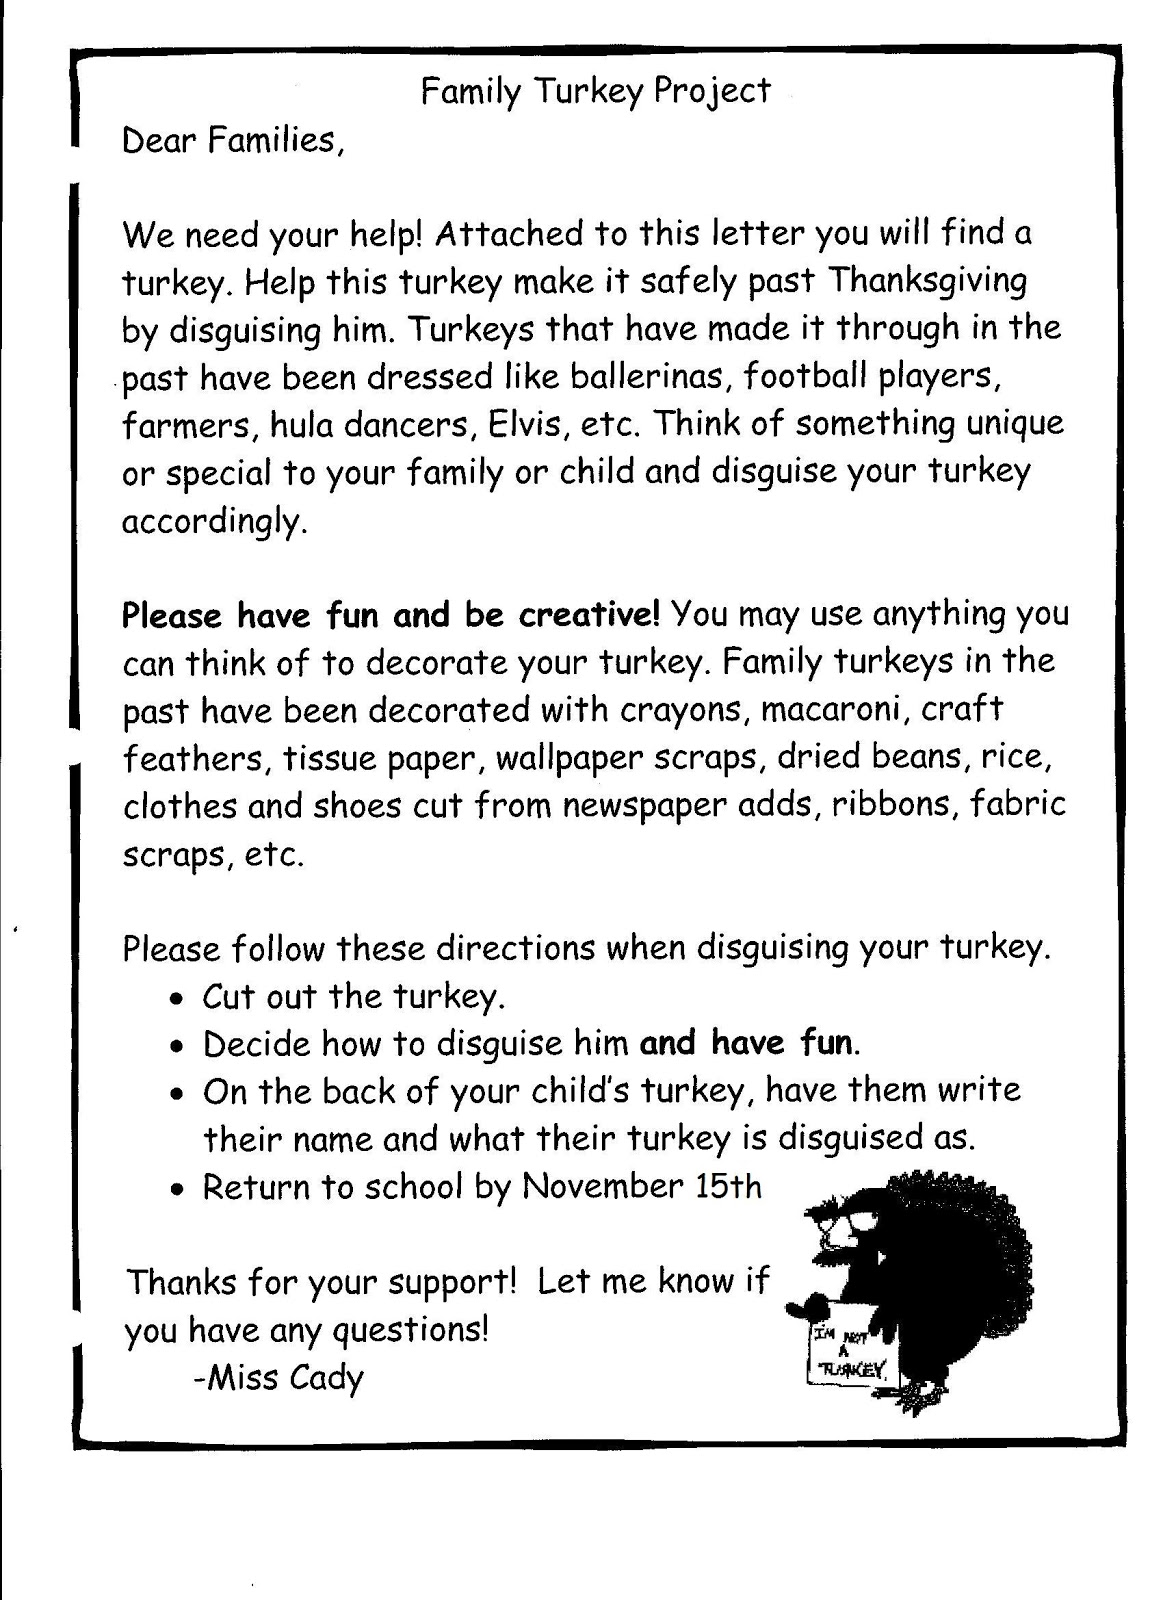 Tom+the+Turkey+Letter Teacher Letter To Parents Template on teacher seating chart template, teacher about me template, teacher conference template, teacher newsletter template, teacher supply list template, teacher homework template, meet the teacher template, teacher curriculum template, teacher grading template, teacher brochure template, teacher handouts template, teacher schedule template, teacher contract template, teacher application template, teacher introduction template, teacher welcome template, teacher calendar template,